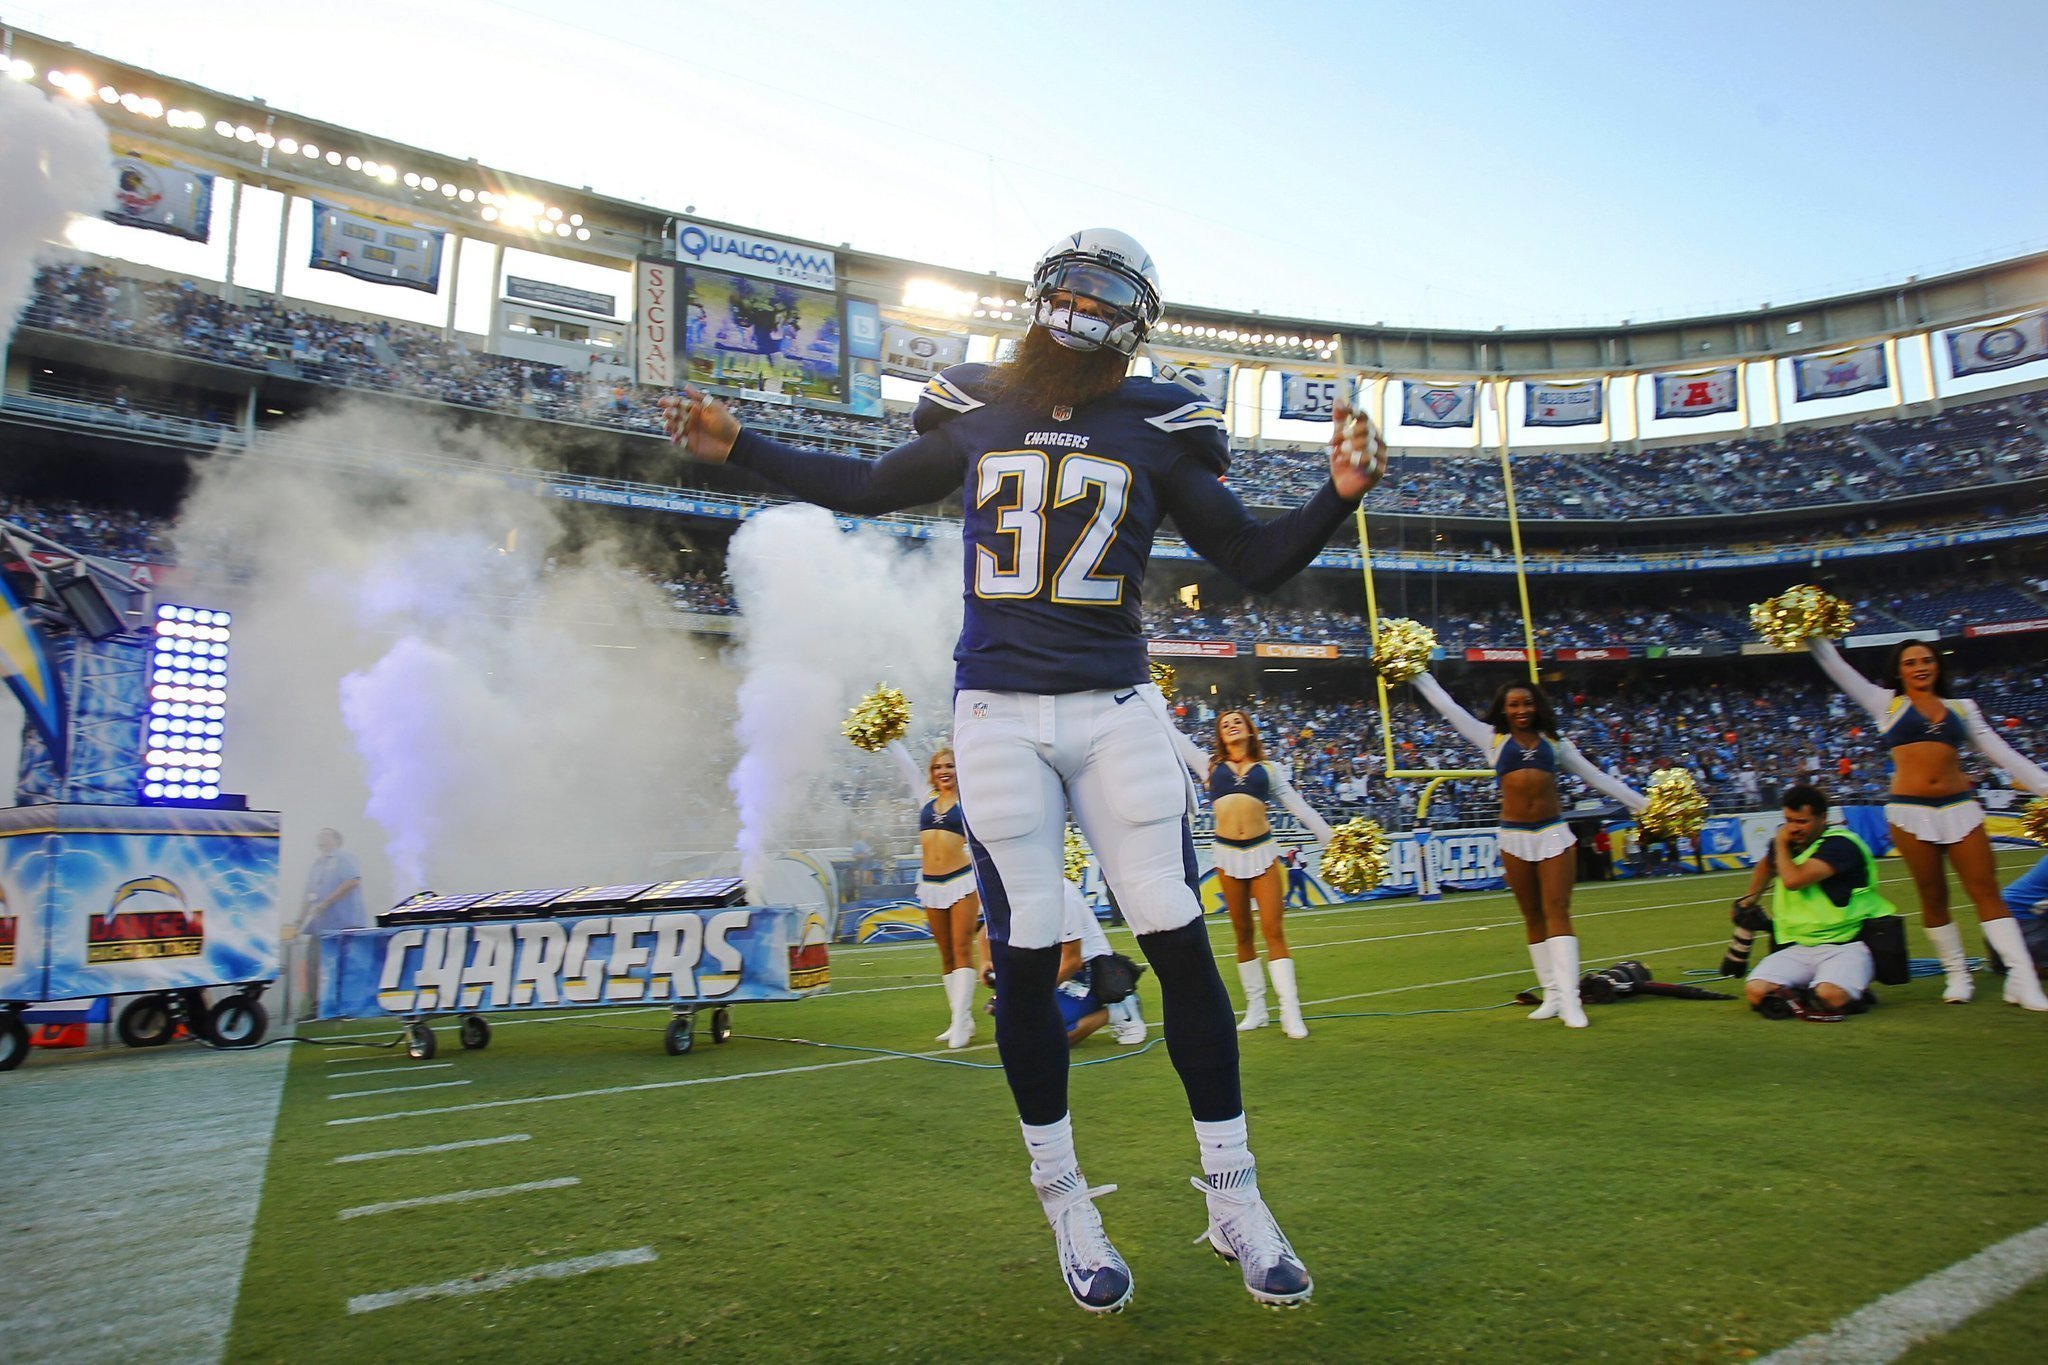 Bolts Came Off Like Bad Guys But Weddle In The Wrong